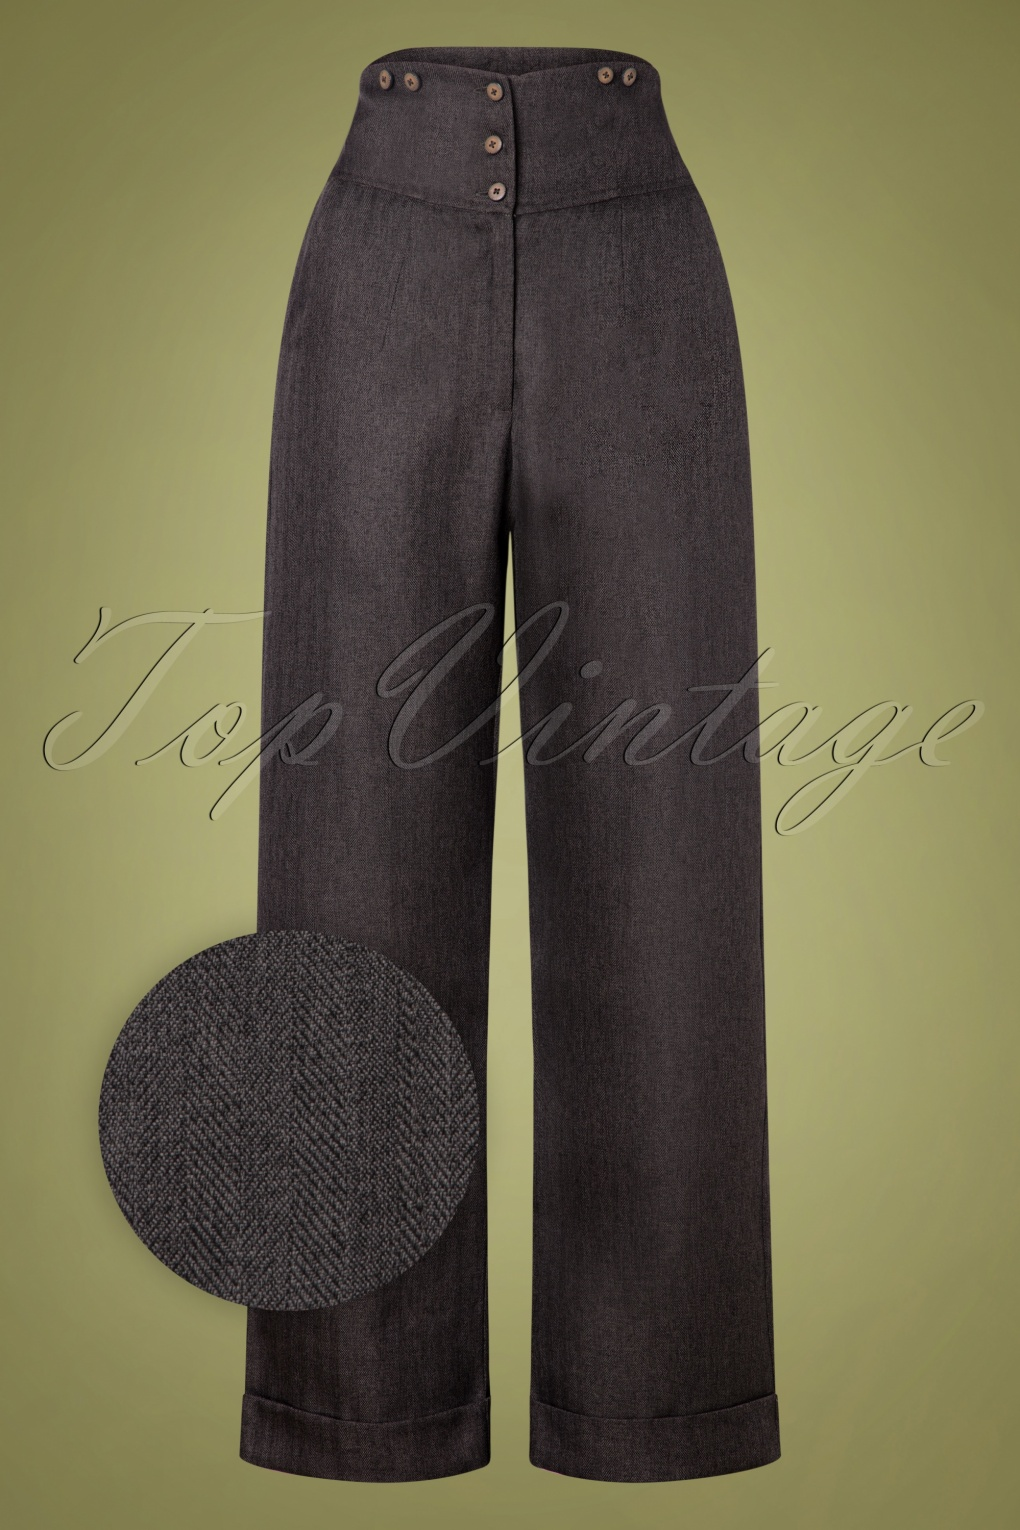 1950s Pants & Jeans- High Waist, Wide Leg, Capri, Pedal Pushers 50s Sassy Trousers in Grey £37.84 AT vintagedancer.com